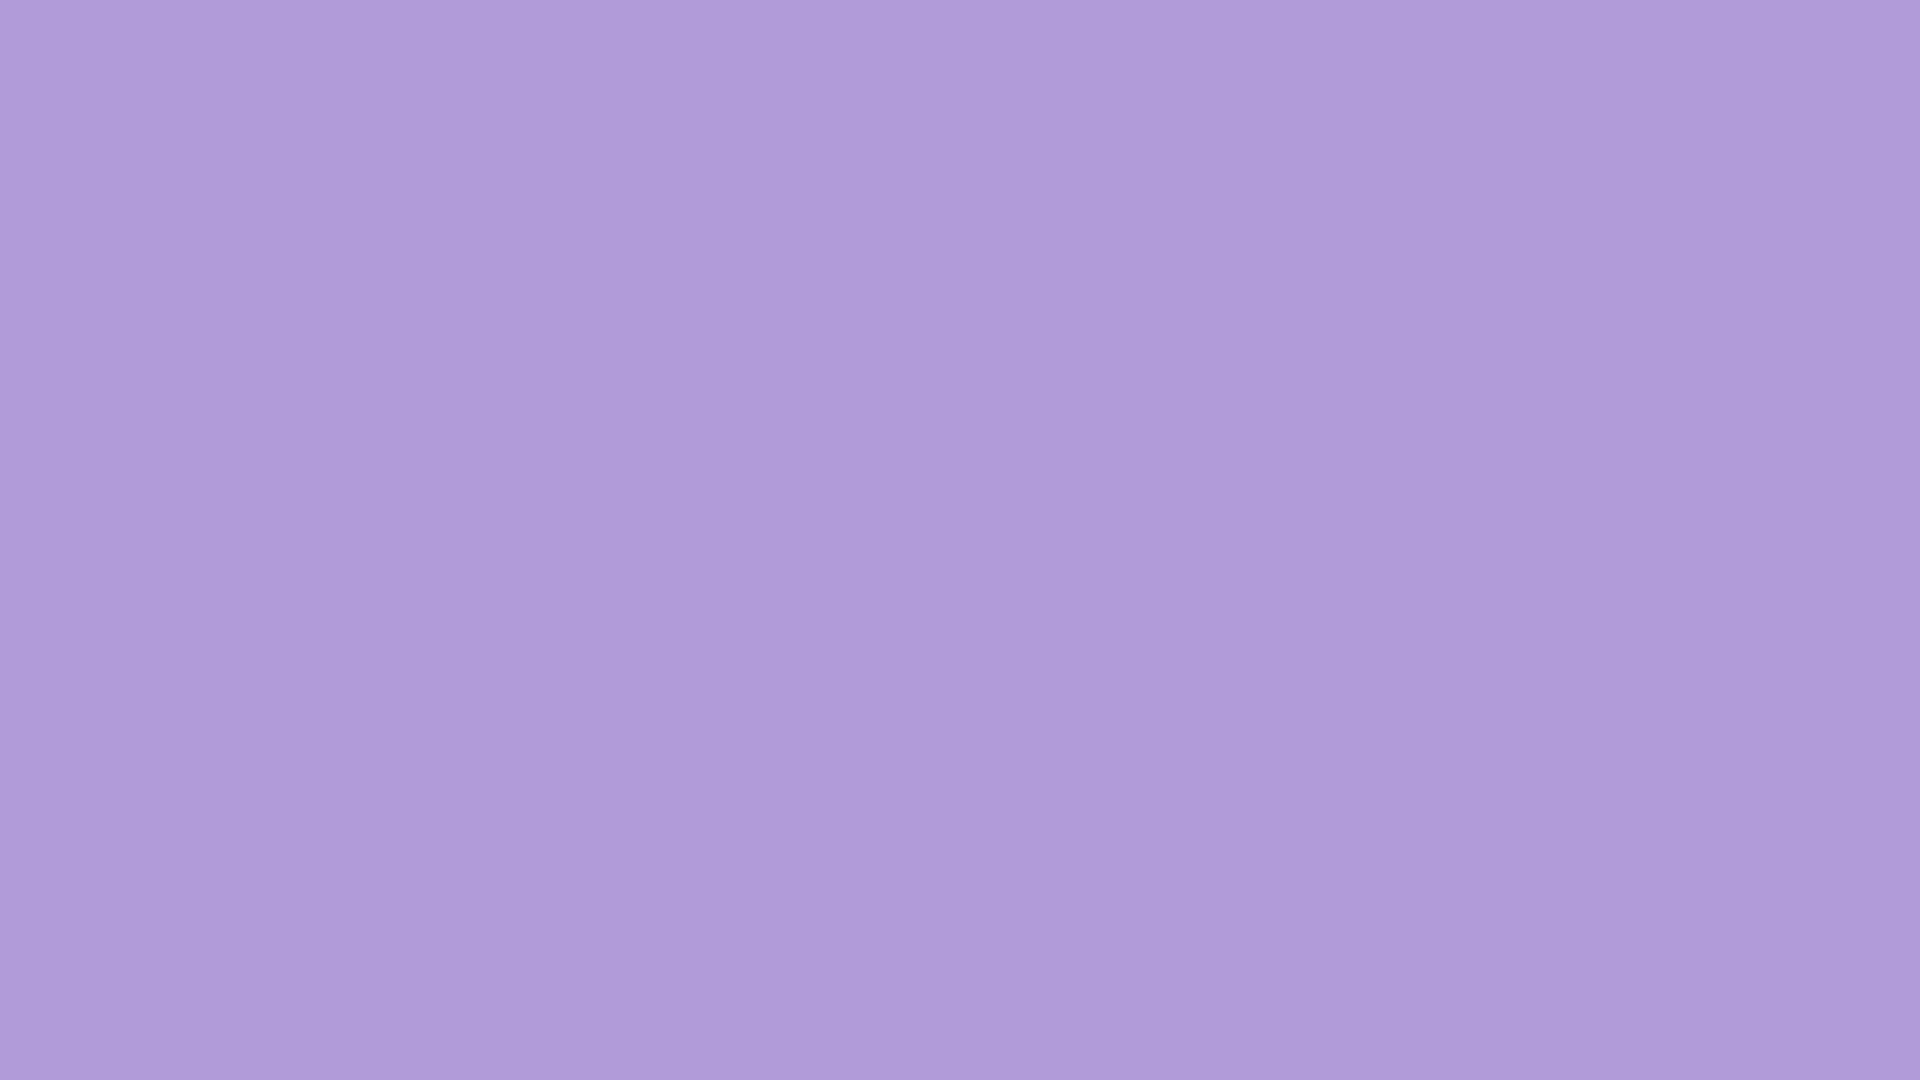 1920x1080 resolution Light Pastel Purple solid color background 1920x1080